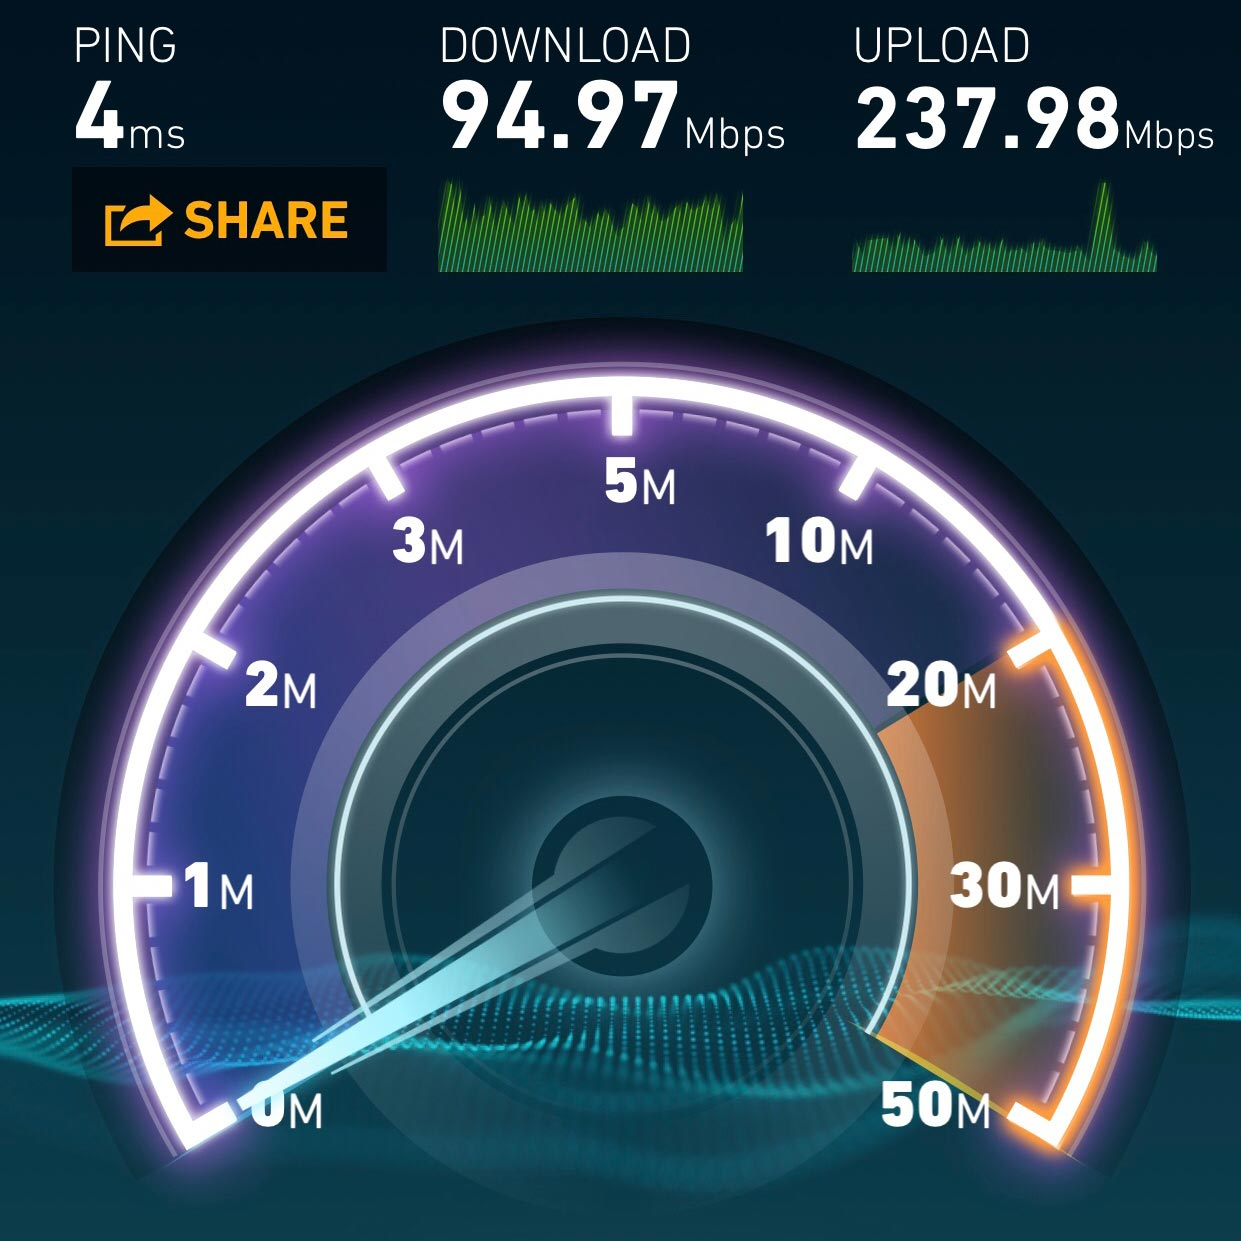 speed gauge for internet at base point in tokyo